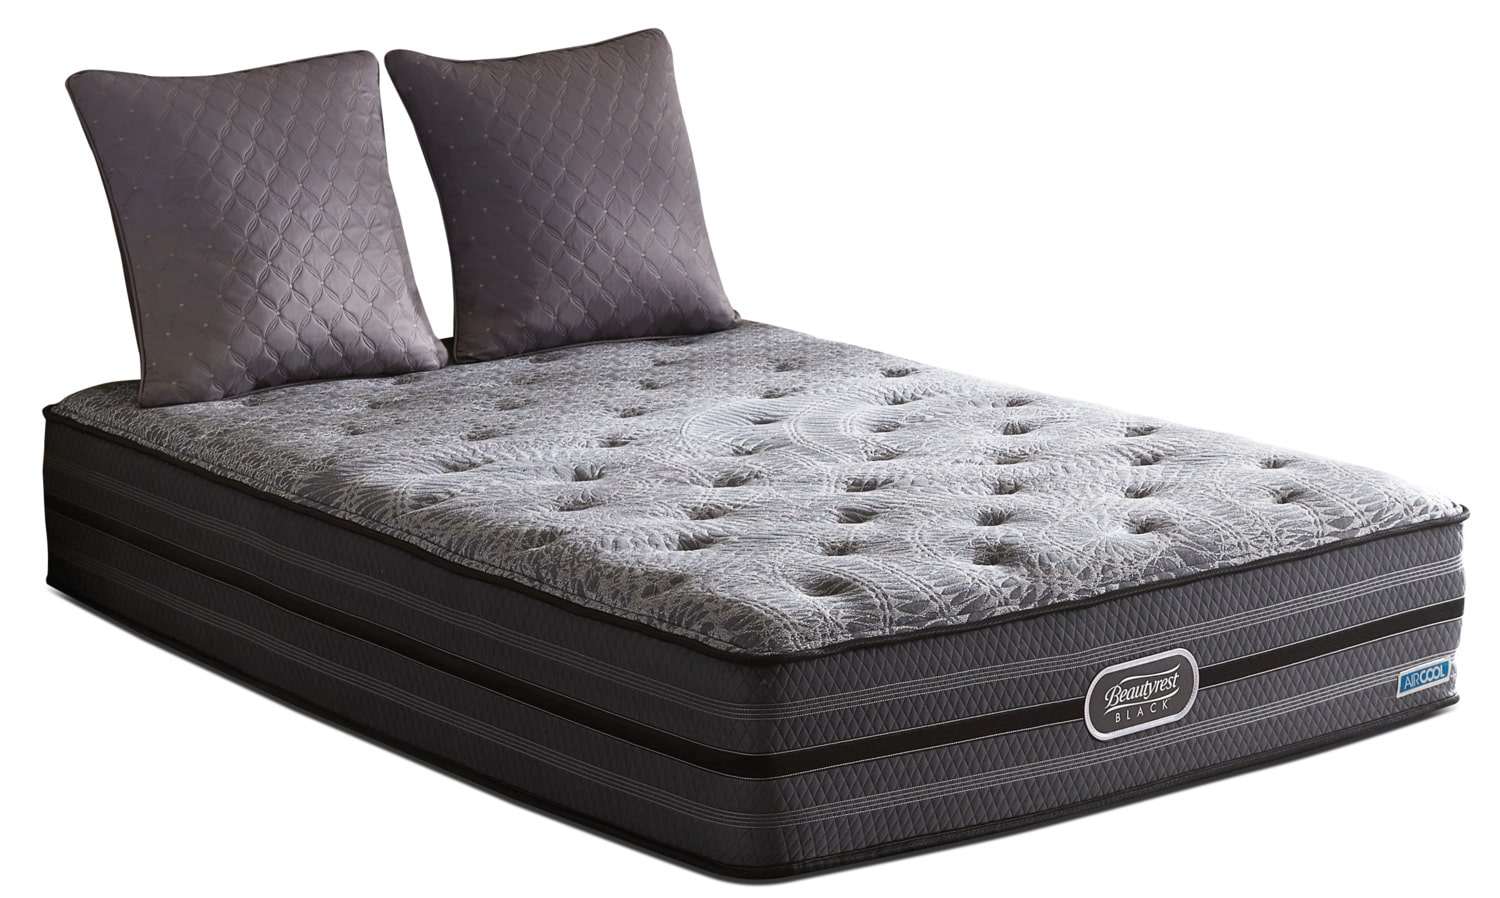 Beautyrest Black Radiance Tight-Top Luxury Firm King Mattress